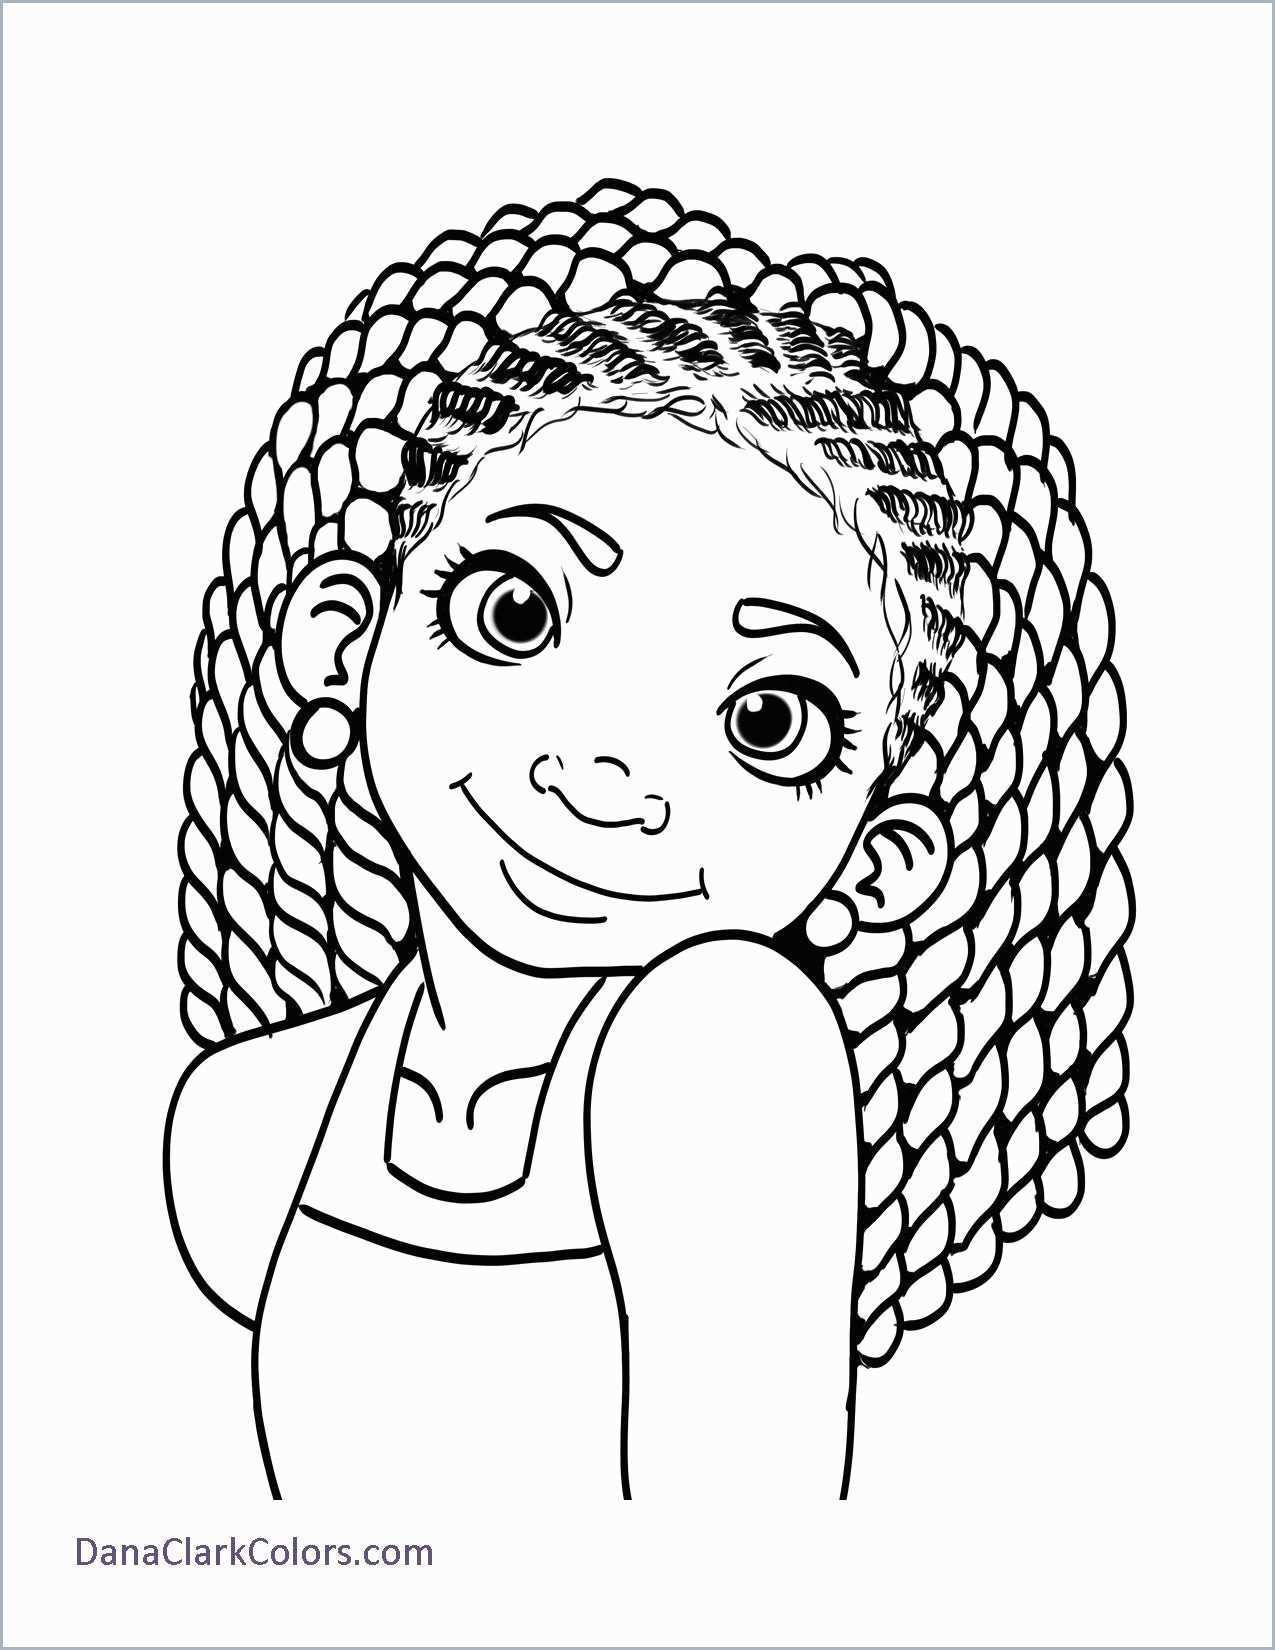 Girl Hair Coloring Page Coloring Pages For Girls Drawings Of Black Girls Coloring Books